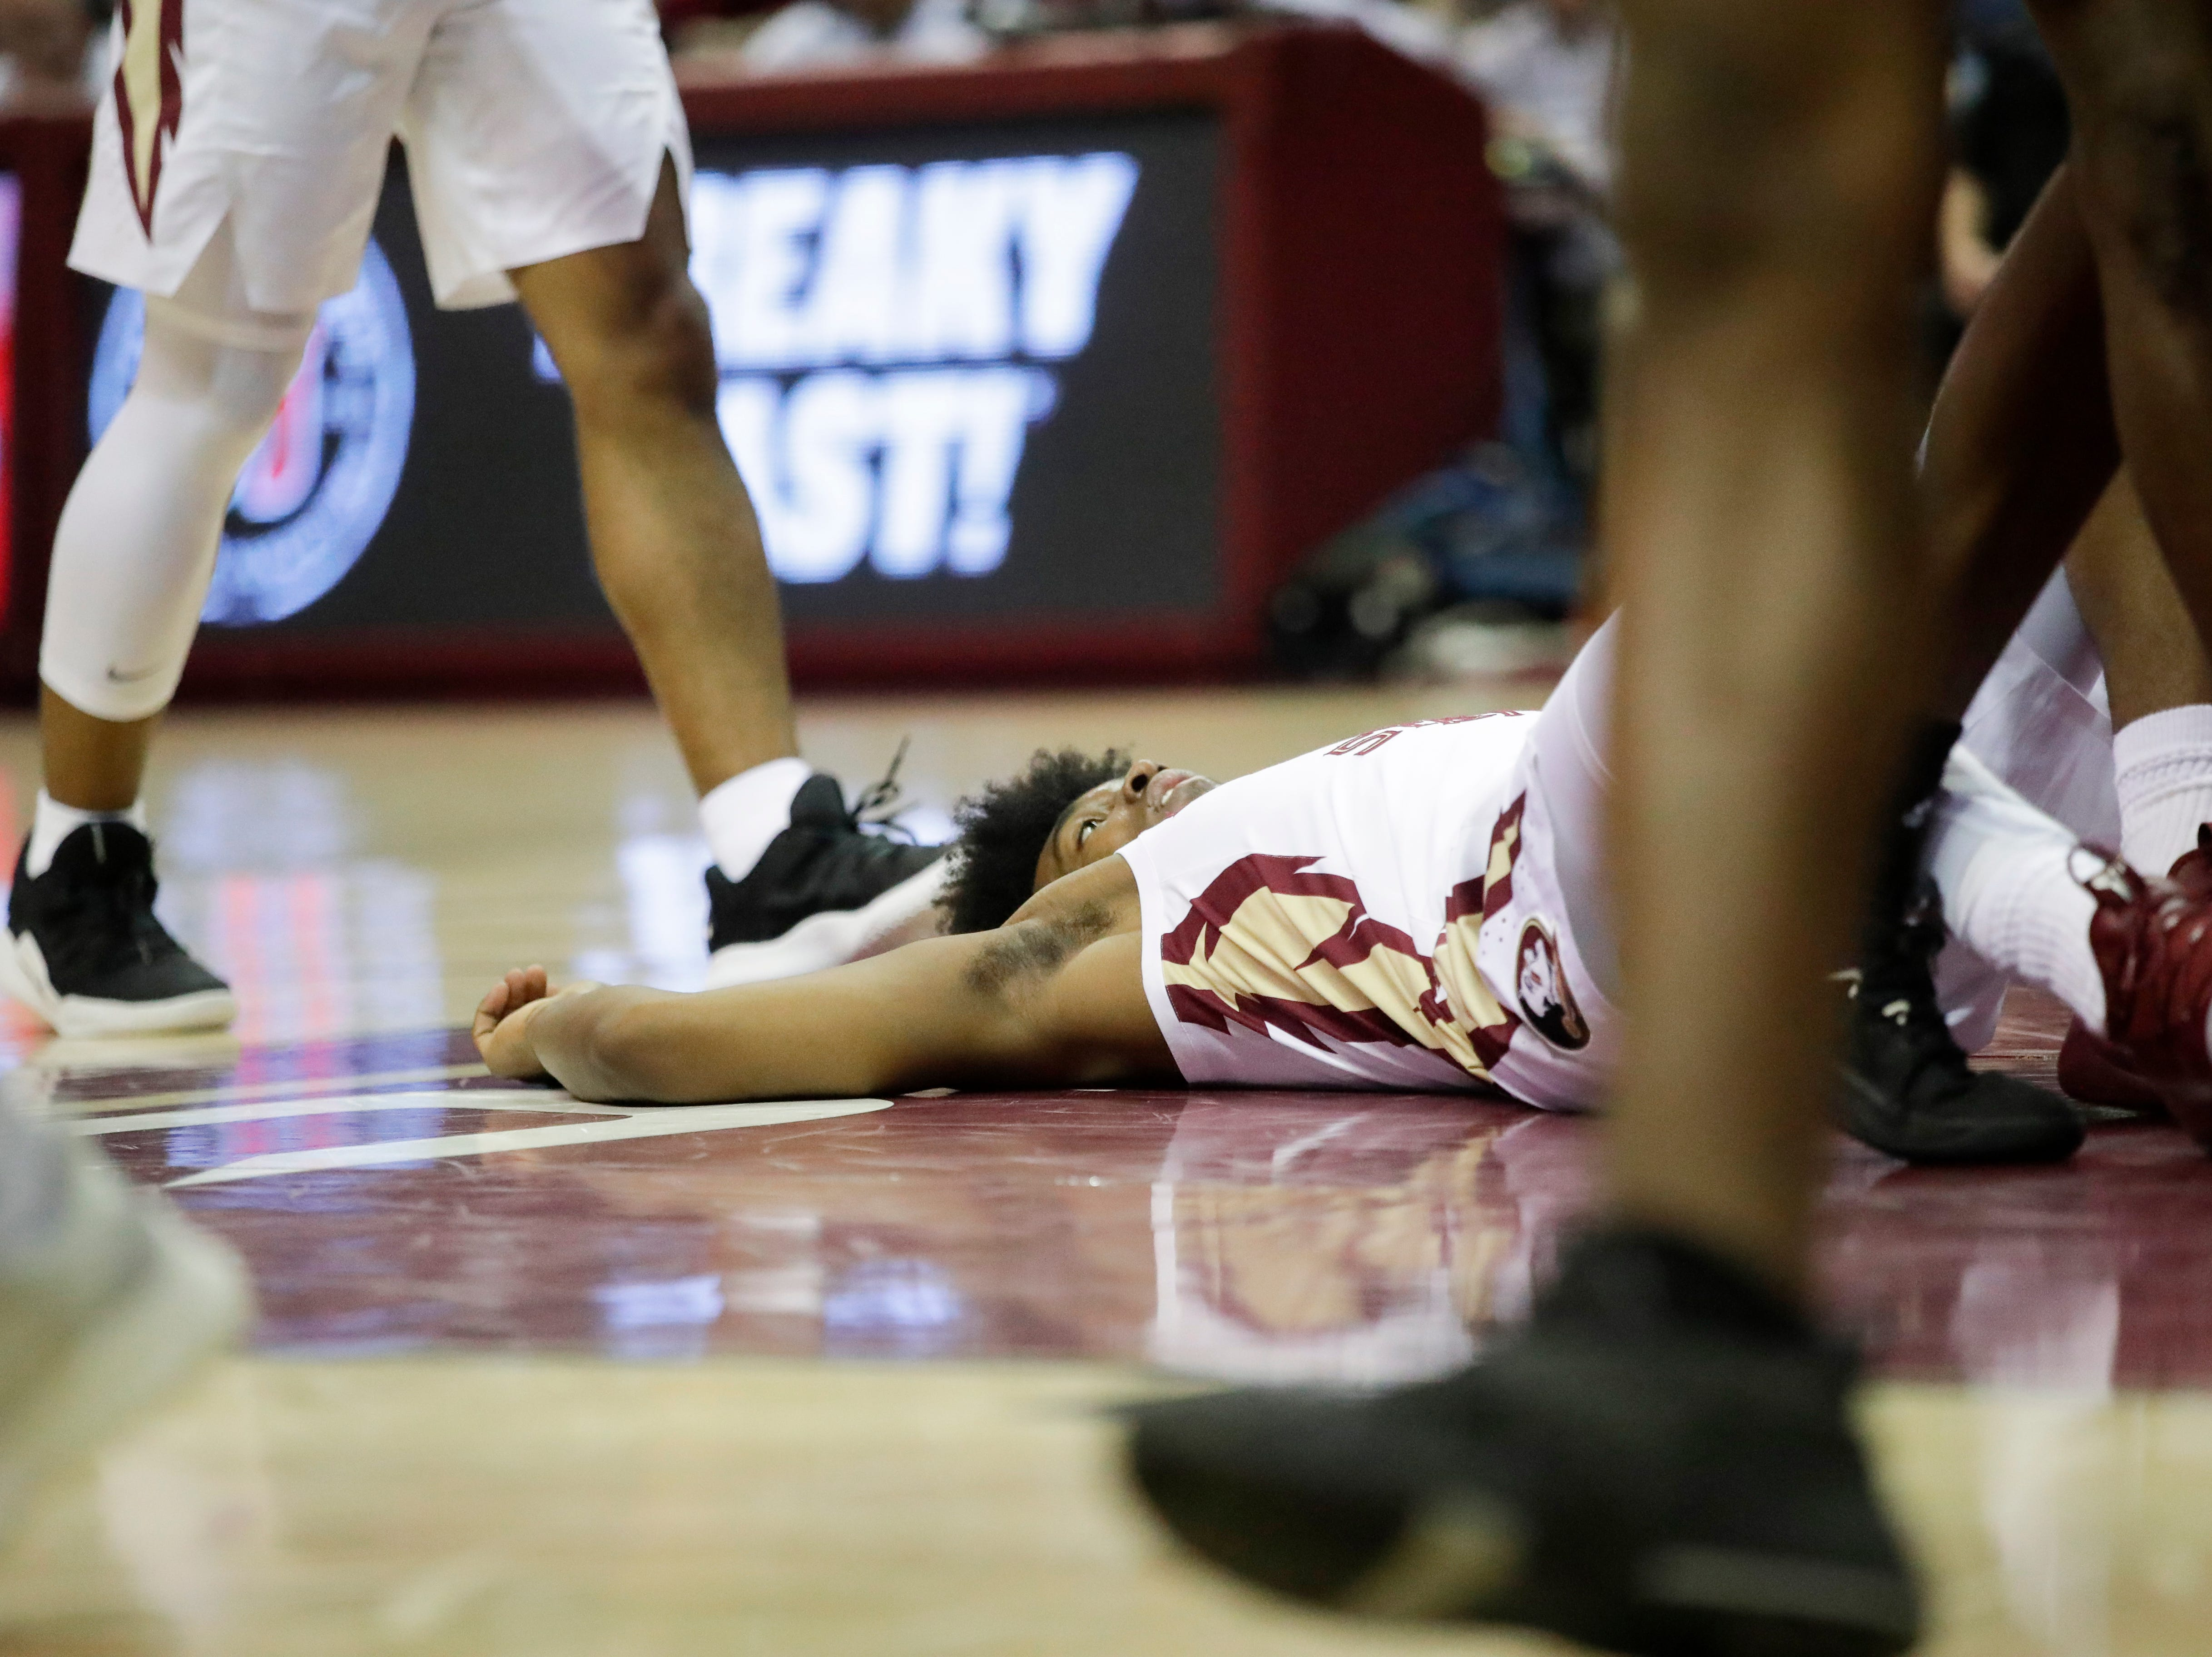 Florida State Seminoles guard David Nichols (11) goes down during a game between FSU and Troy University at Donald L. Tucker Civic Center Monday, Dec. 3, 2018.